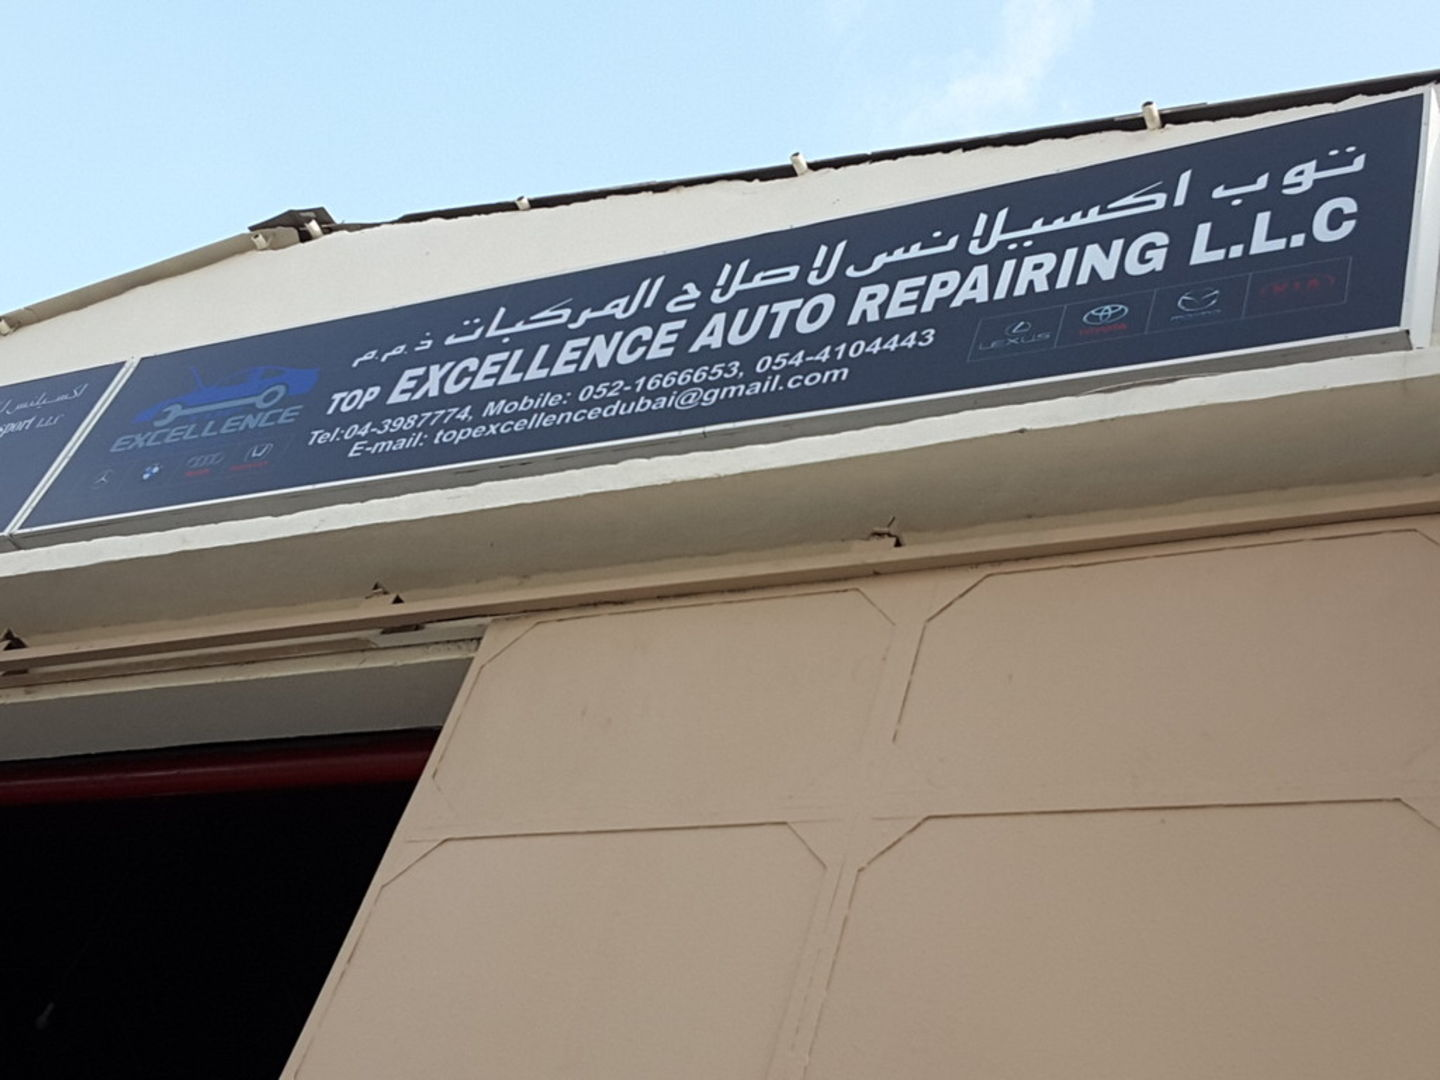 HiDubai-business-top-excellence-auto-repairing-transport-vehicle-services-car-assistance-repair-al-khabaisi-dubai-2